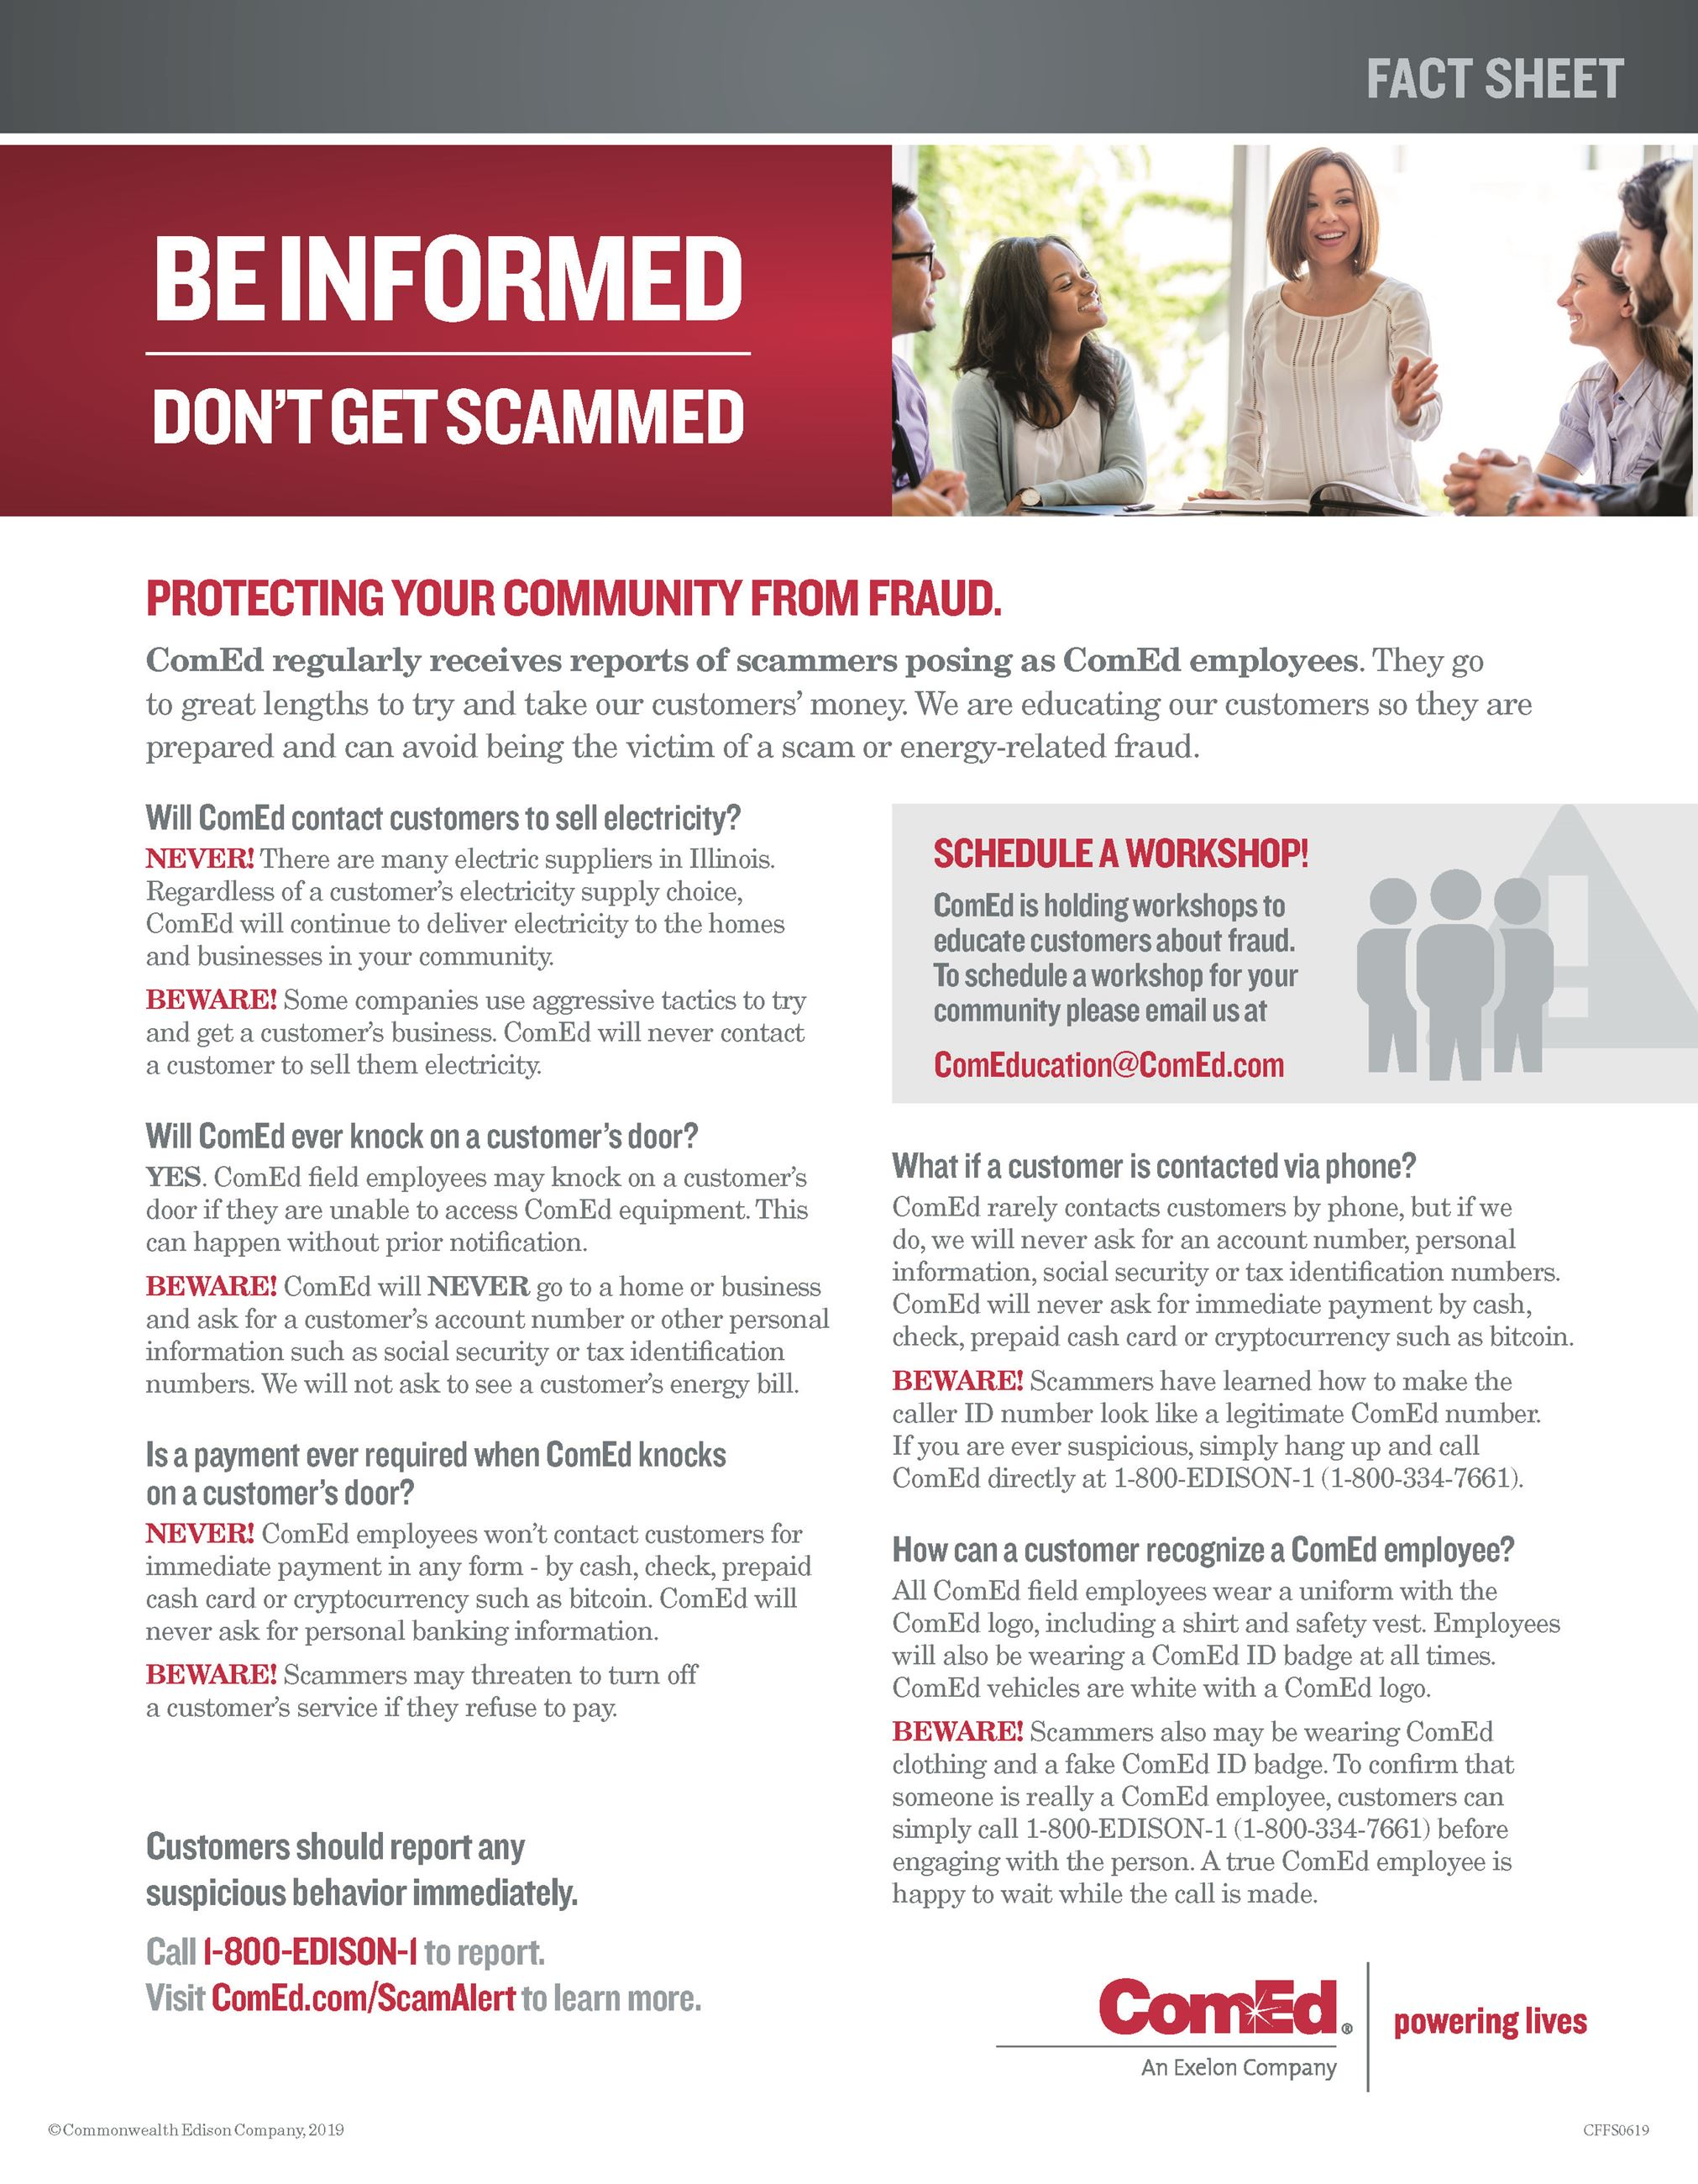 ComEd Consumer Fraud Fact Sheet - 01-21-20